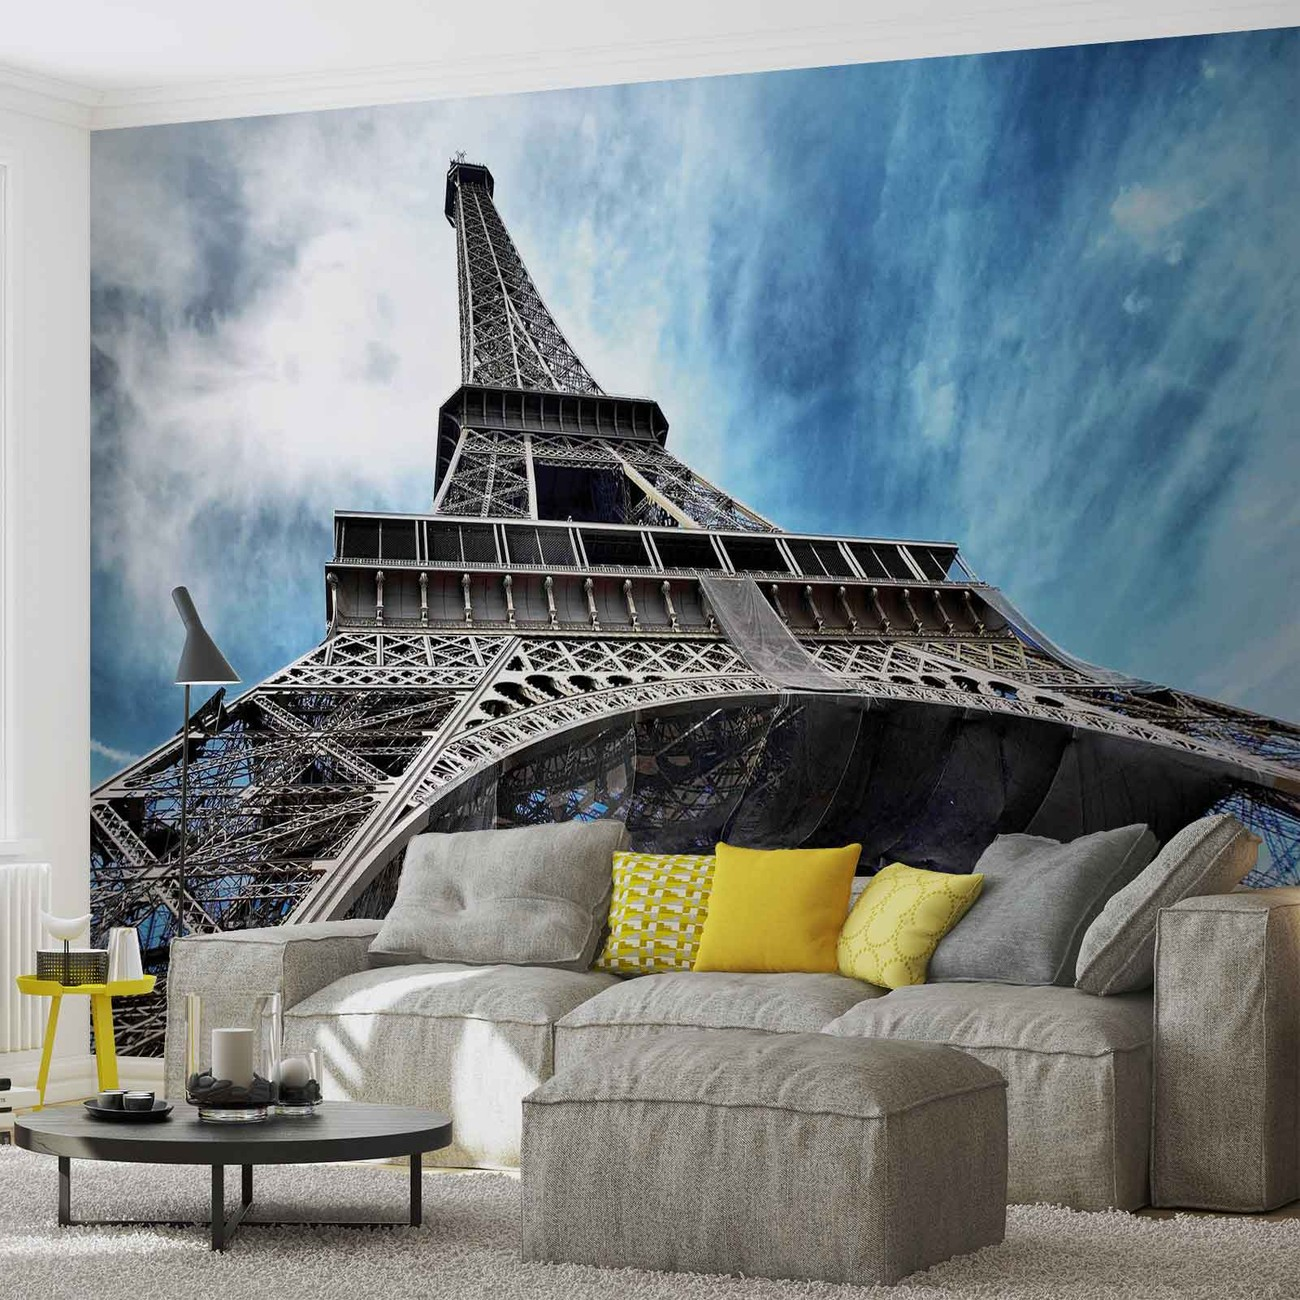 eiffel tower paris wall paper mural buy at europosters eiffel tower paris wall stickers mural decal 55 inches